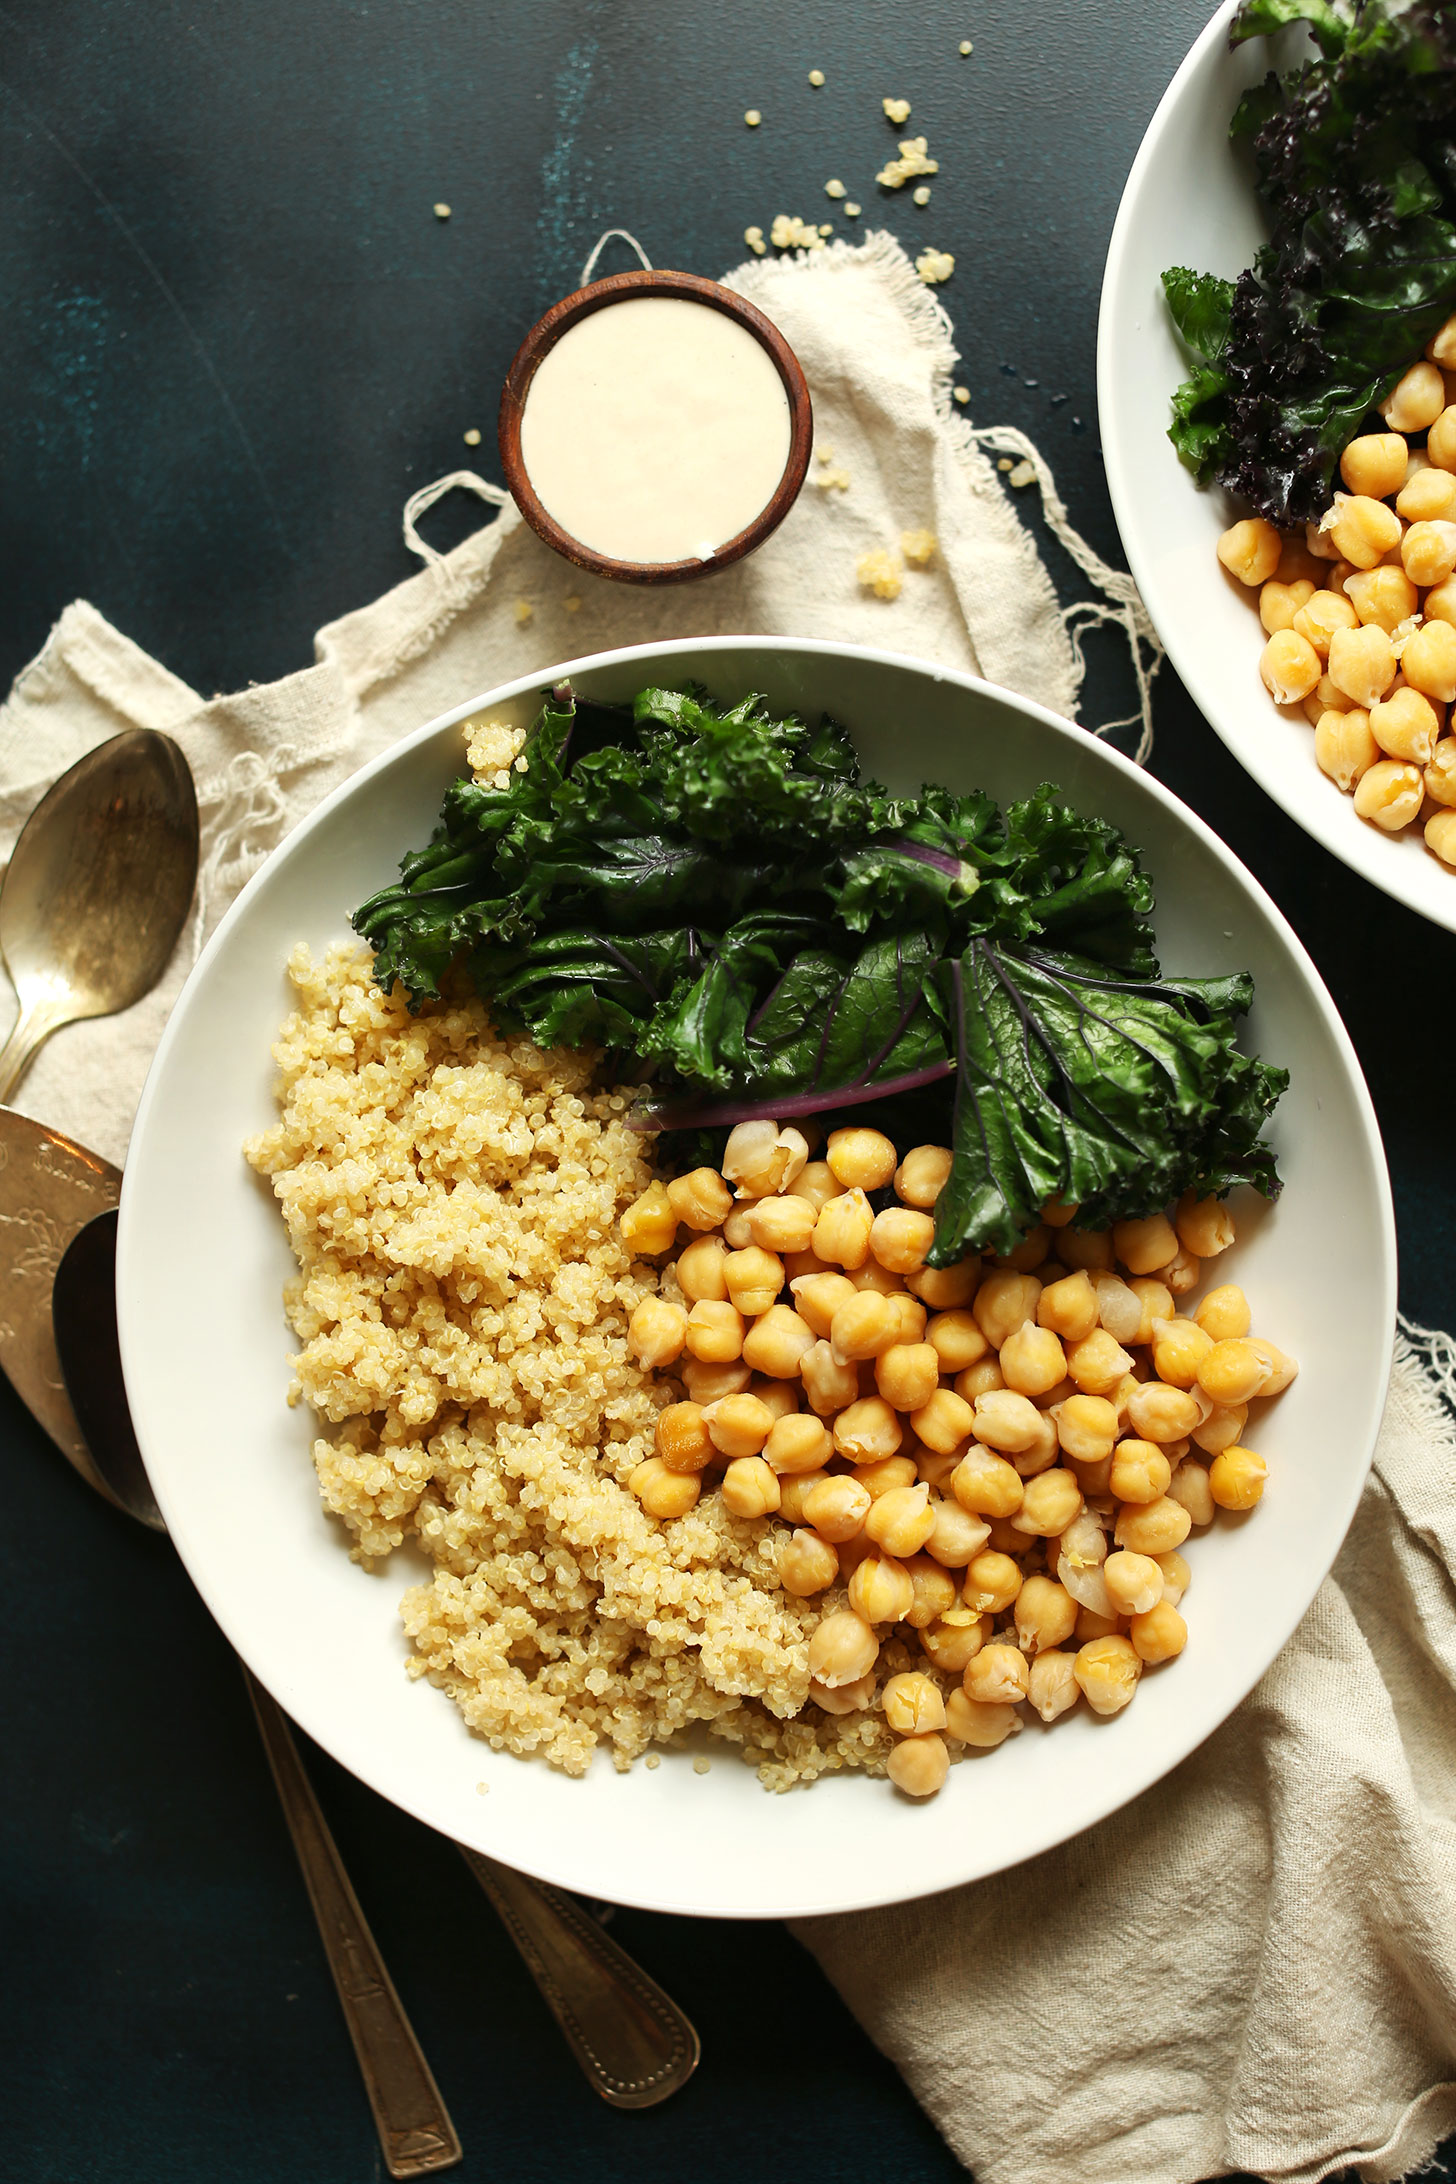 Quinoa Chickpea Buddha Bowls with Kale and Tahini Sauce for a simple plant-based meal